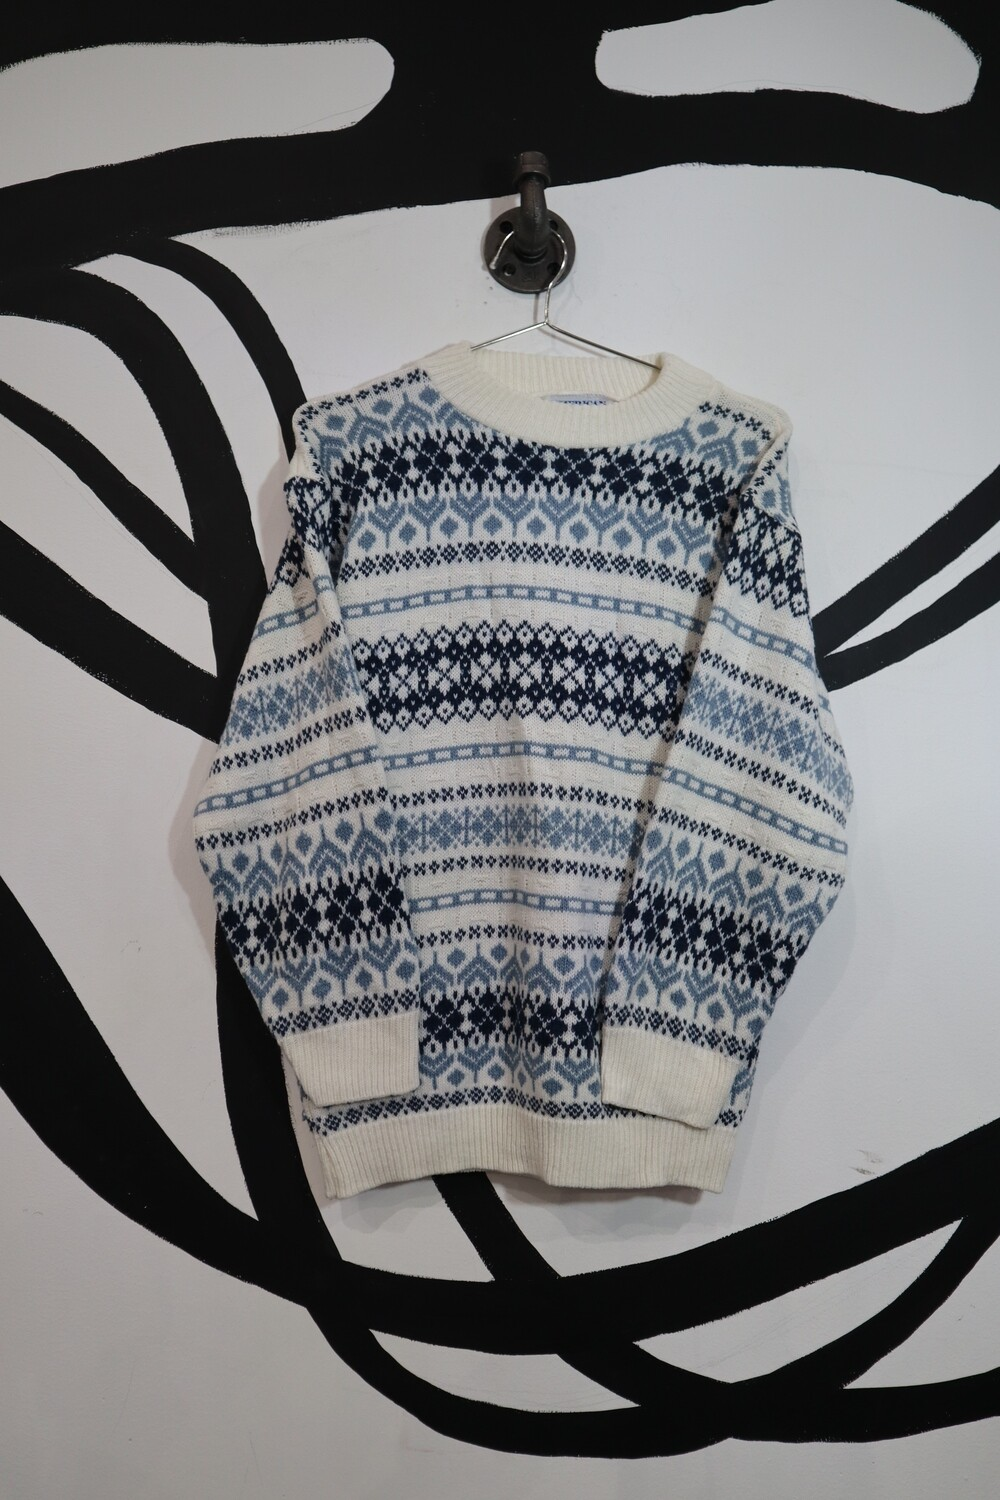 American Pride White and Blue Patterned Sweater - Men's S